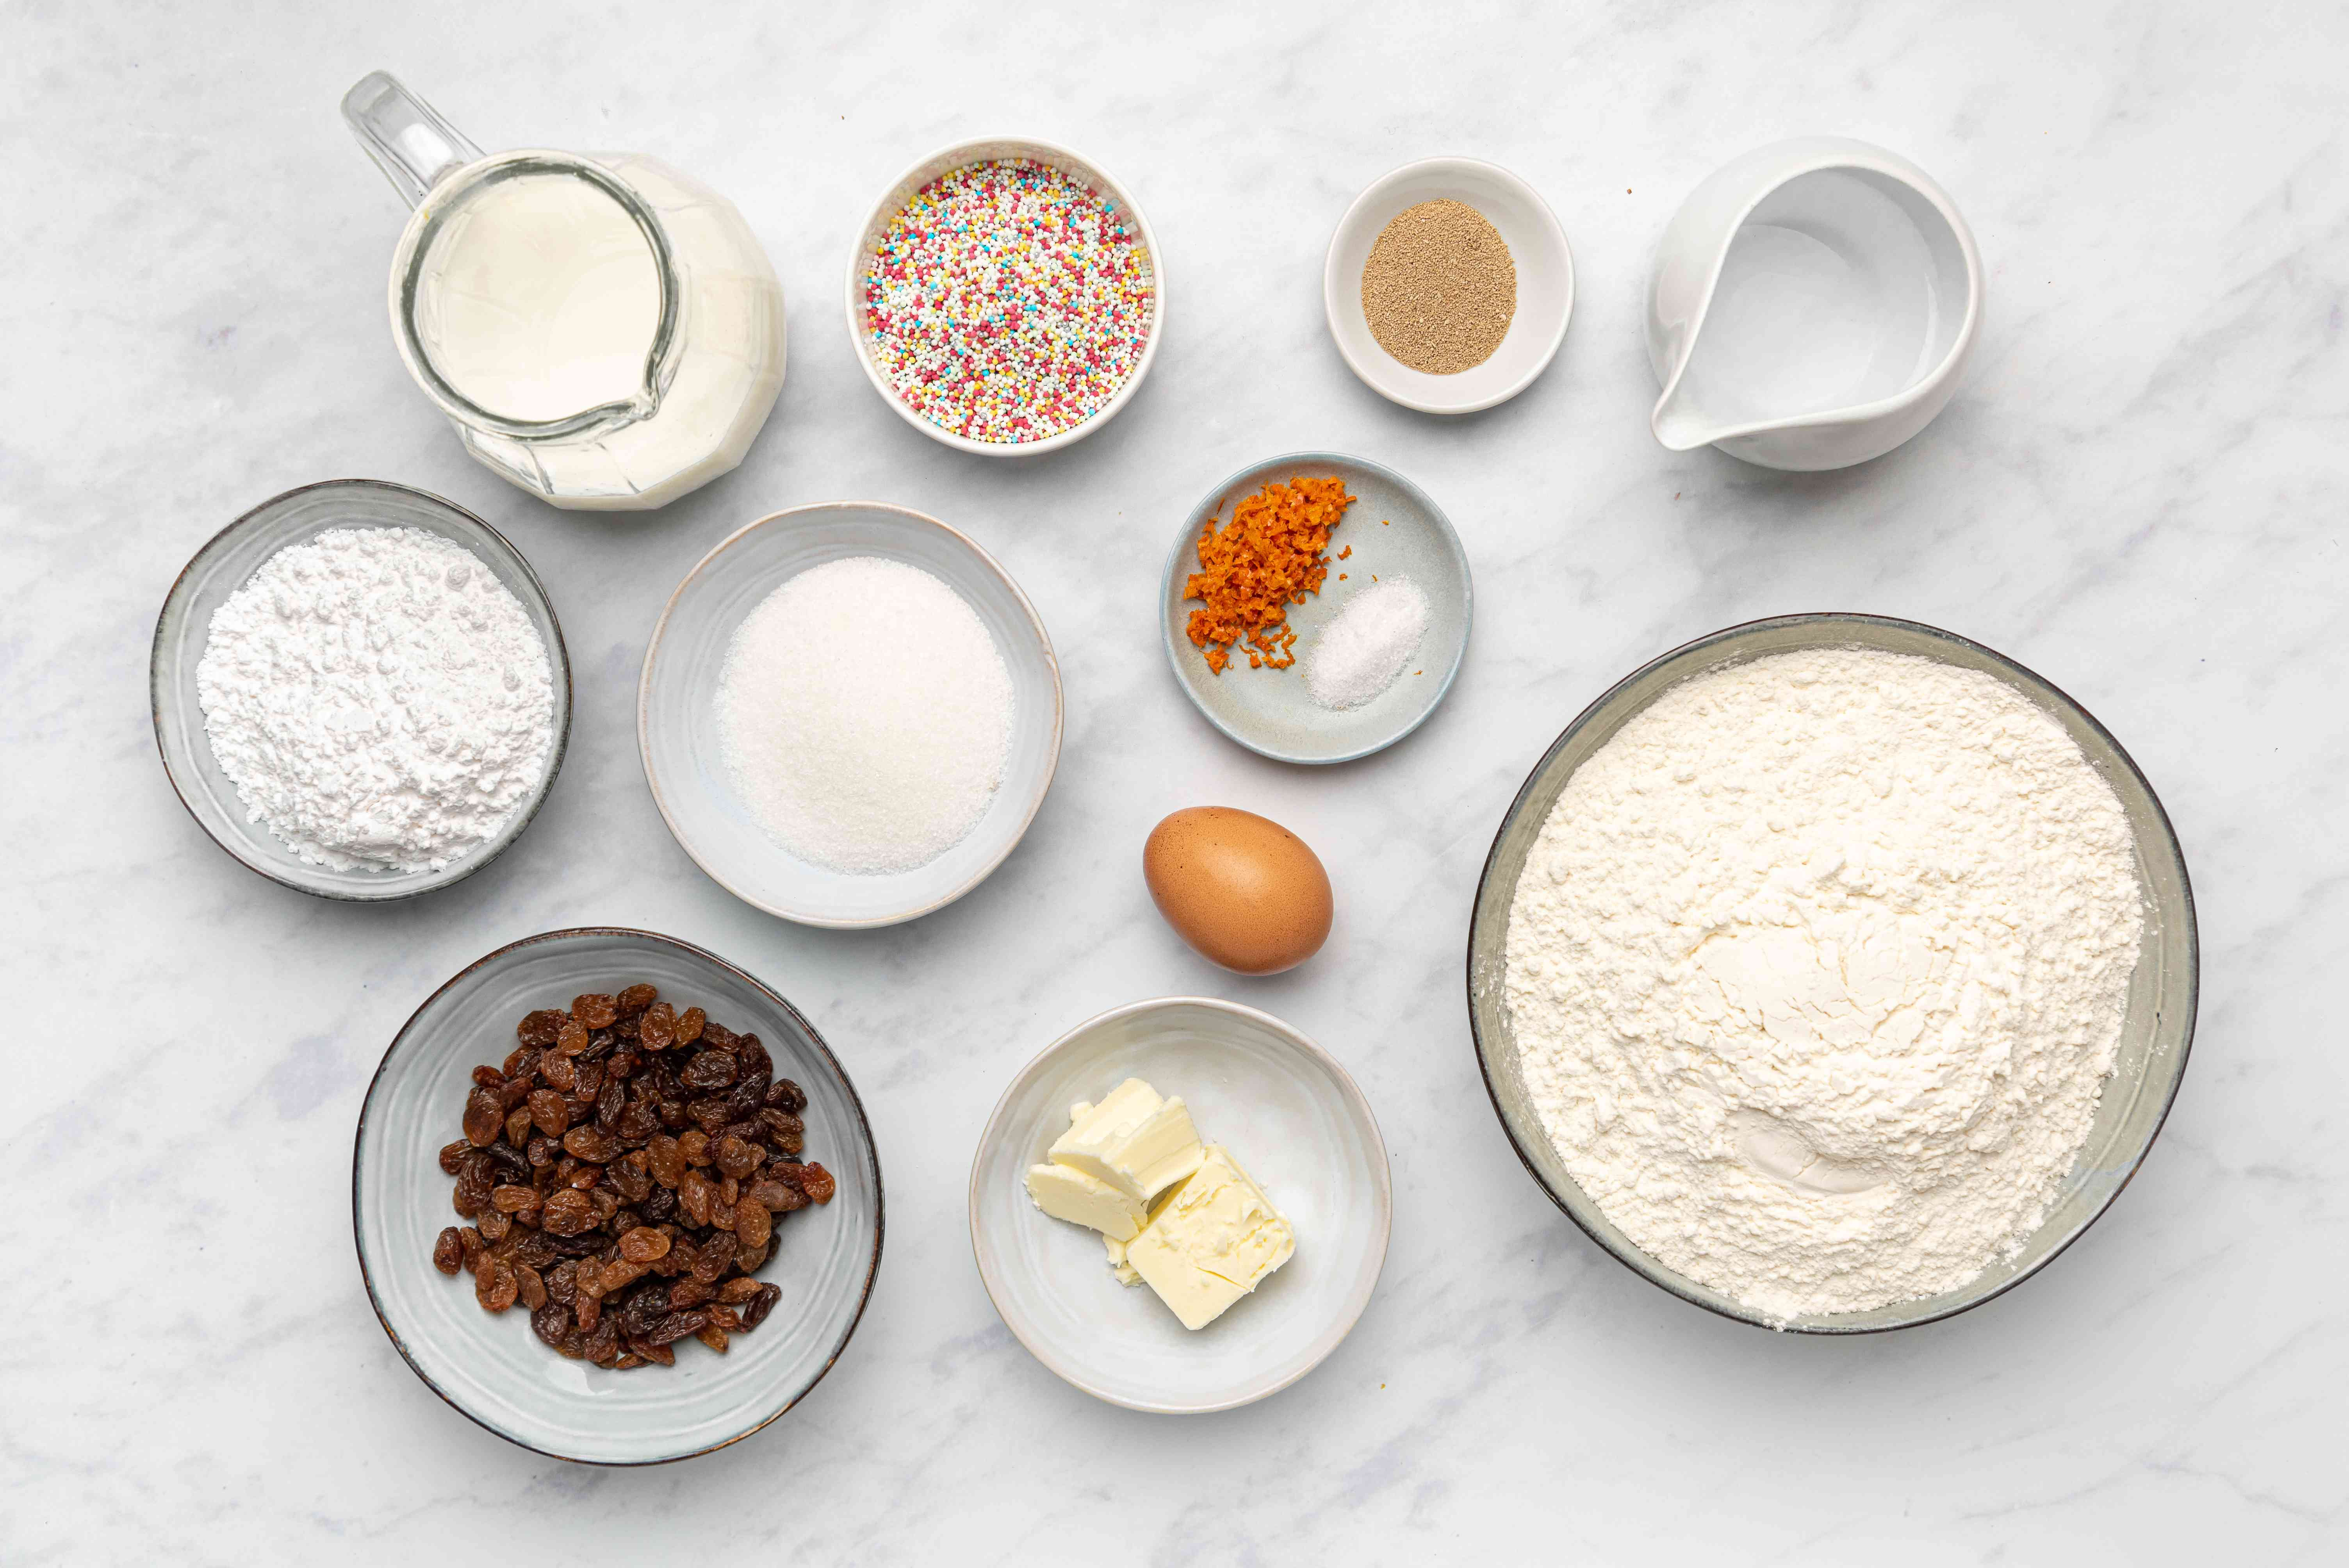 Ingredients for Easter bread